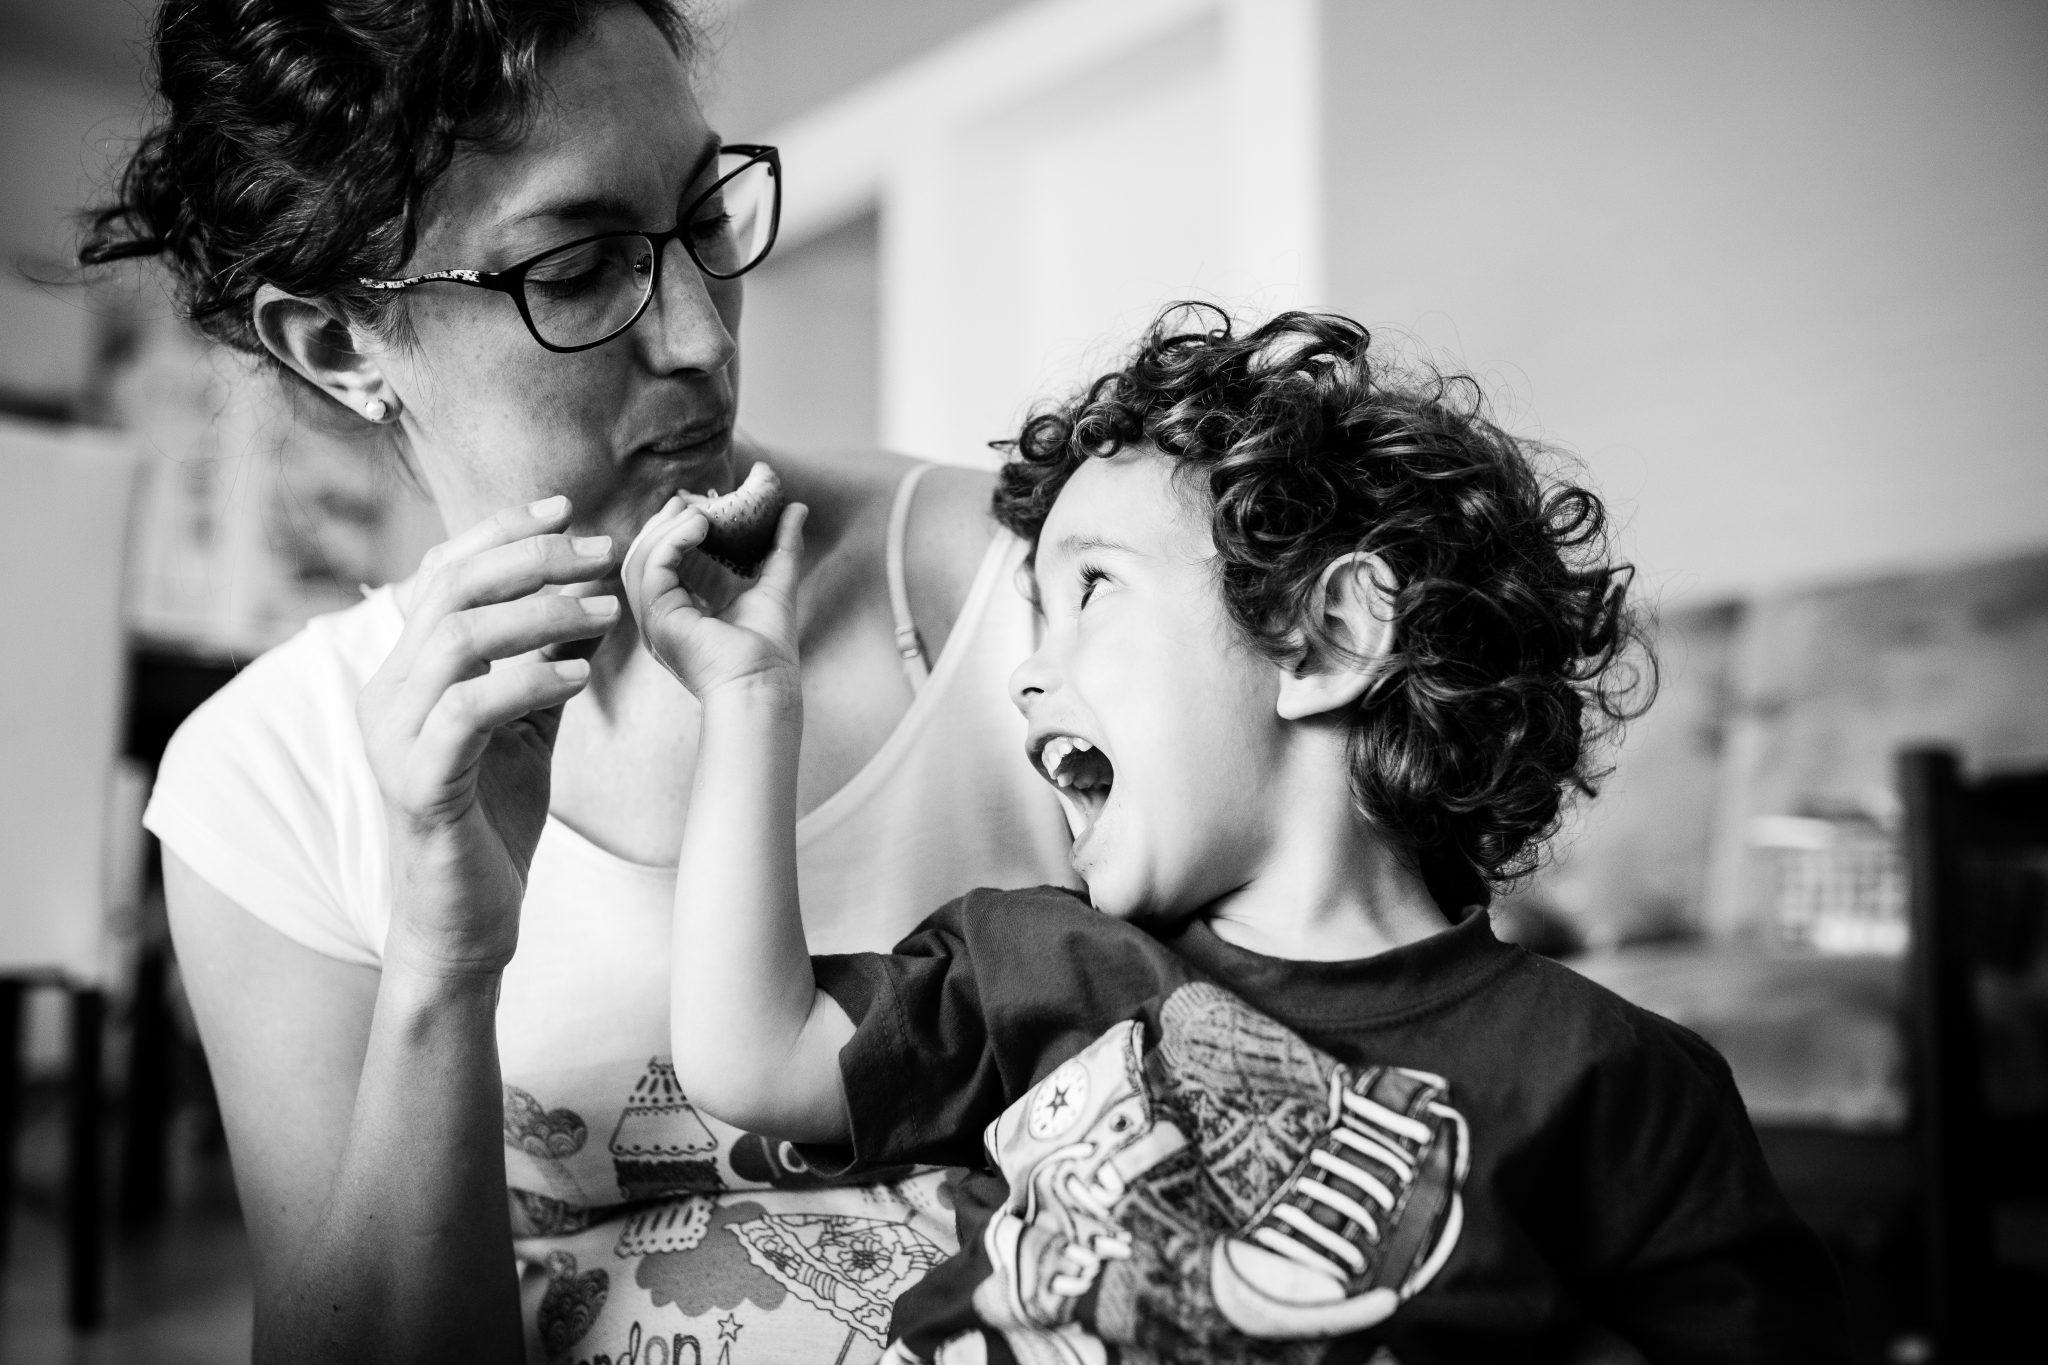 Toddler feeding his mom, giving her a strawberry while opening his mouth very big. Black and white photography.